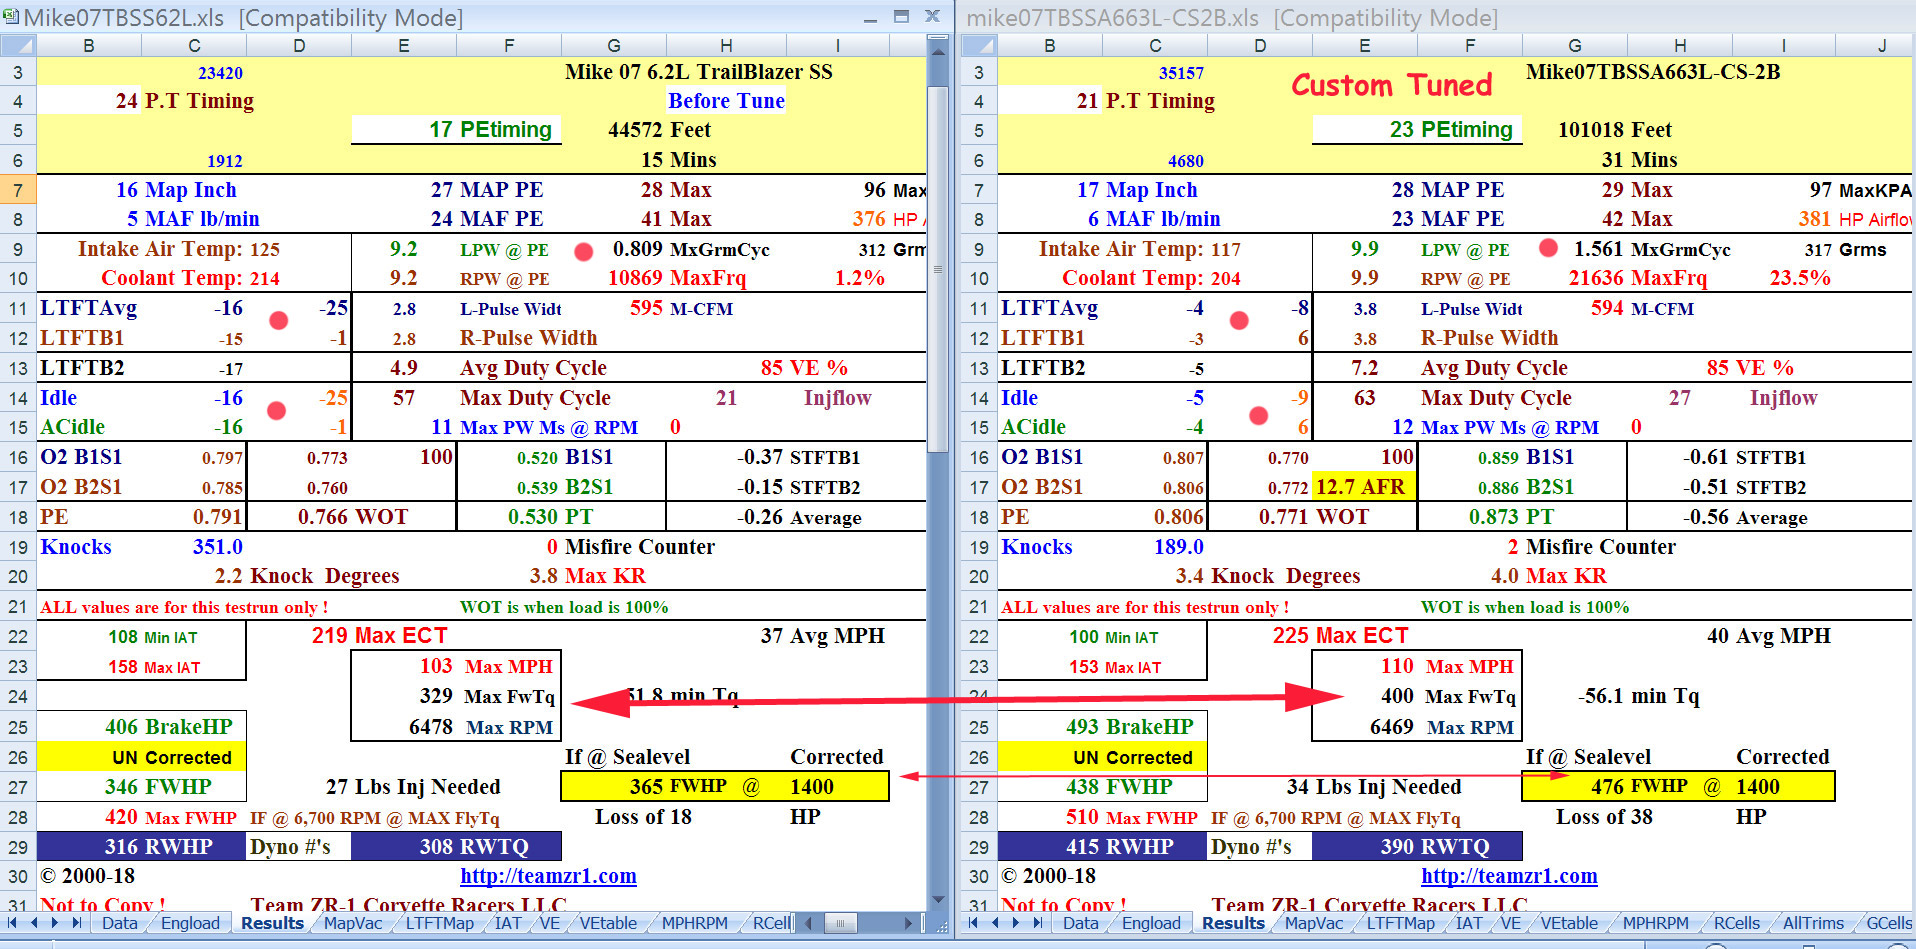 Solving problems when converting from LS2 to LS3 Performance crate